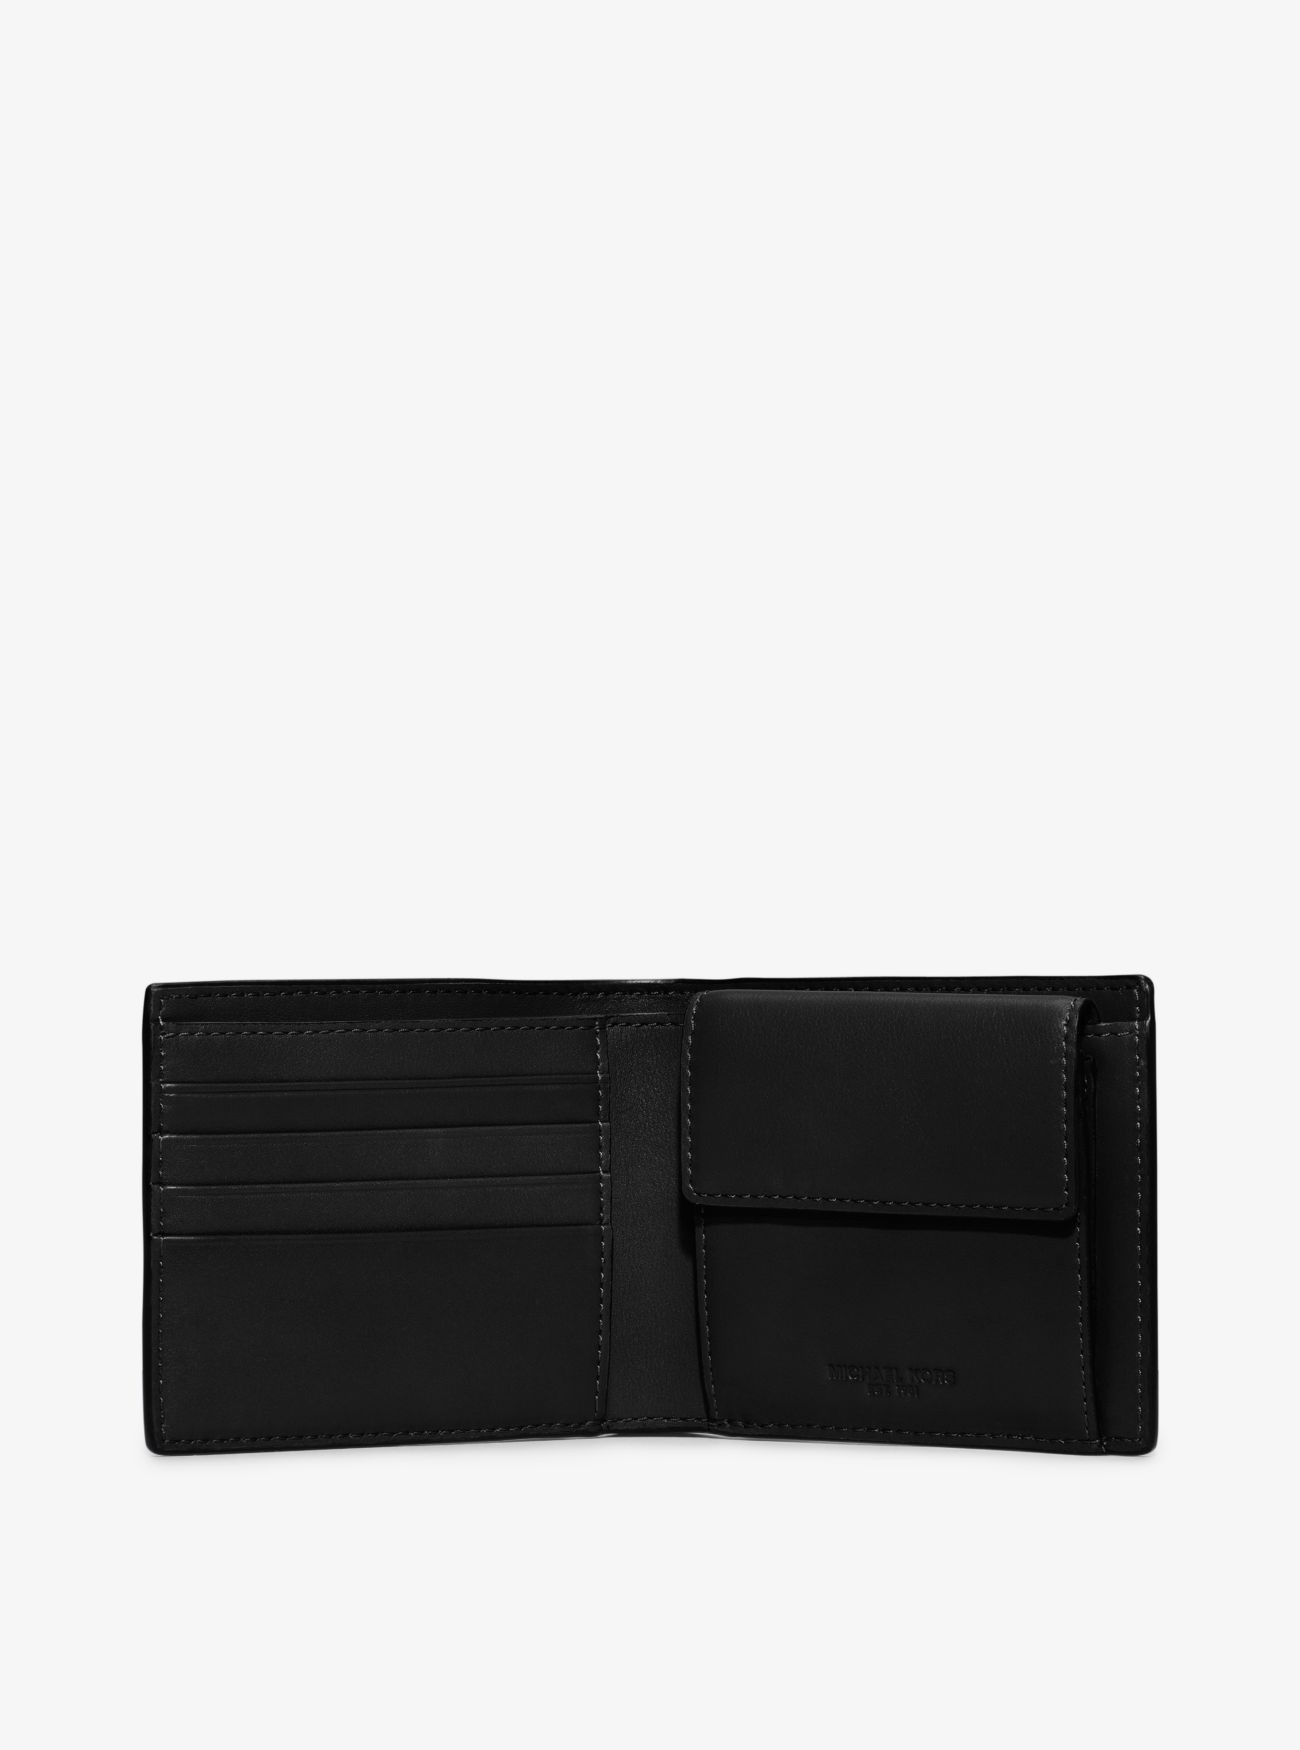 c3f968609cf9 MICHAEL KORS Harrison Leather Billfold Wallet. michaelkors all ...